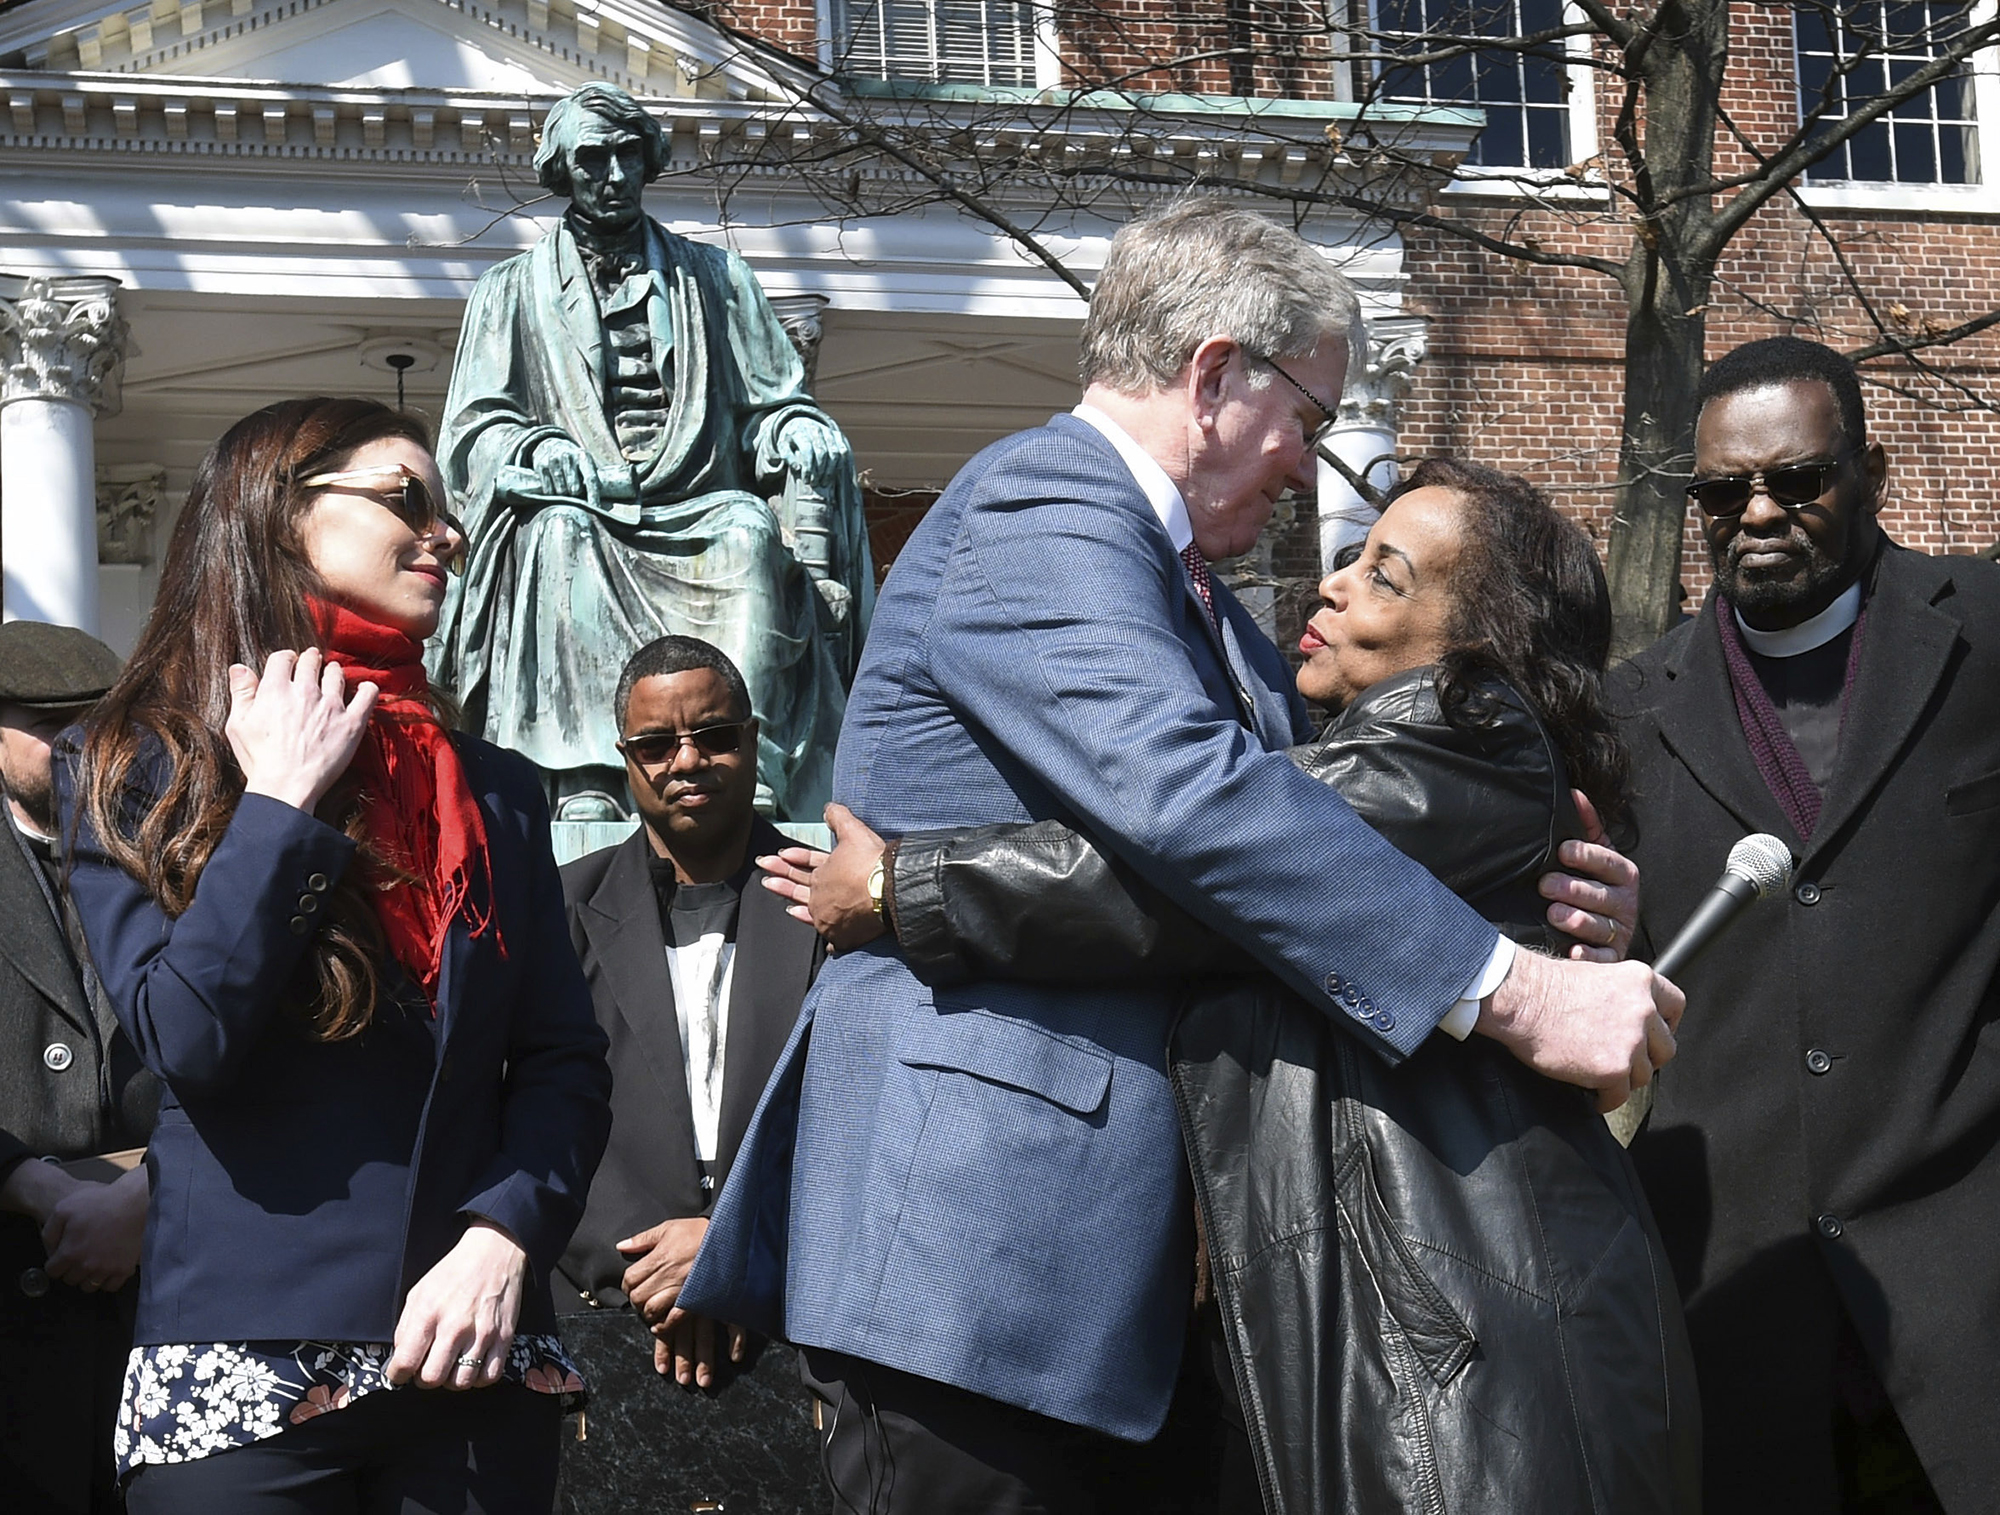 Lynne Jackson (R), a descendant of Dred Scott, hugs Charles Taney III, a descendant of U.S. Supreme Court Chief Justice Roger Taney, on the 160th anniversary of the Dred Scott decision in front of the Maryland State House on March 6, 2017, in Annapolis, Md.